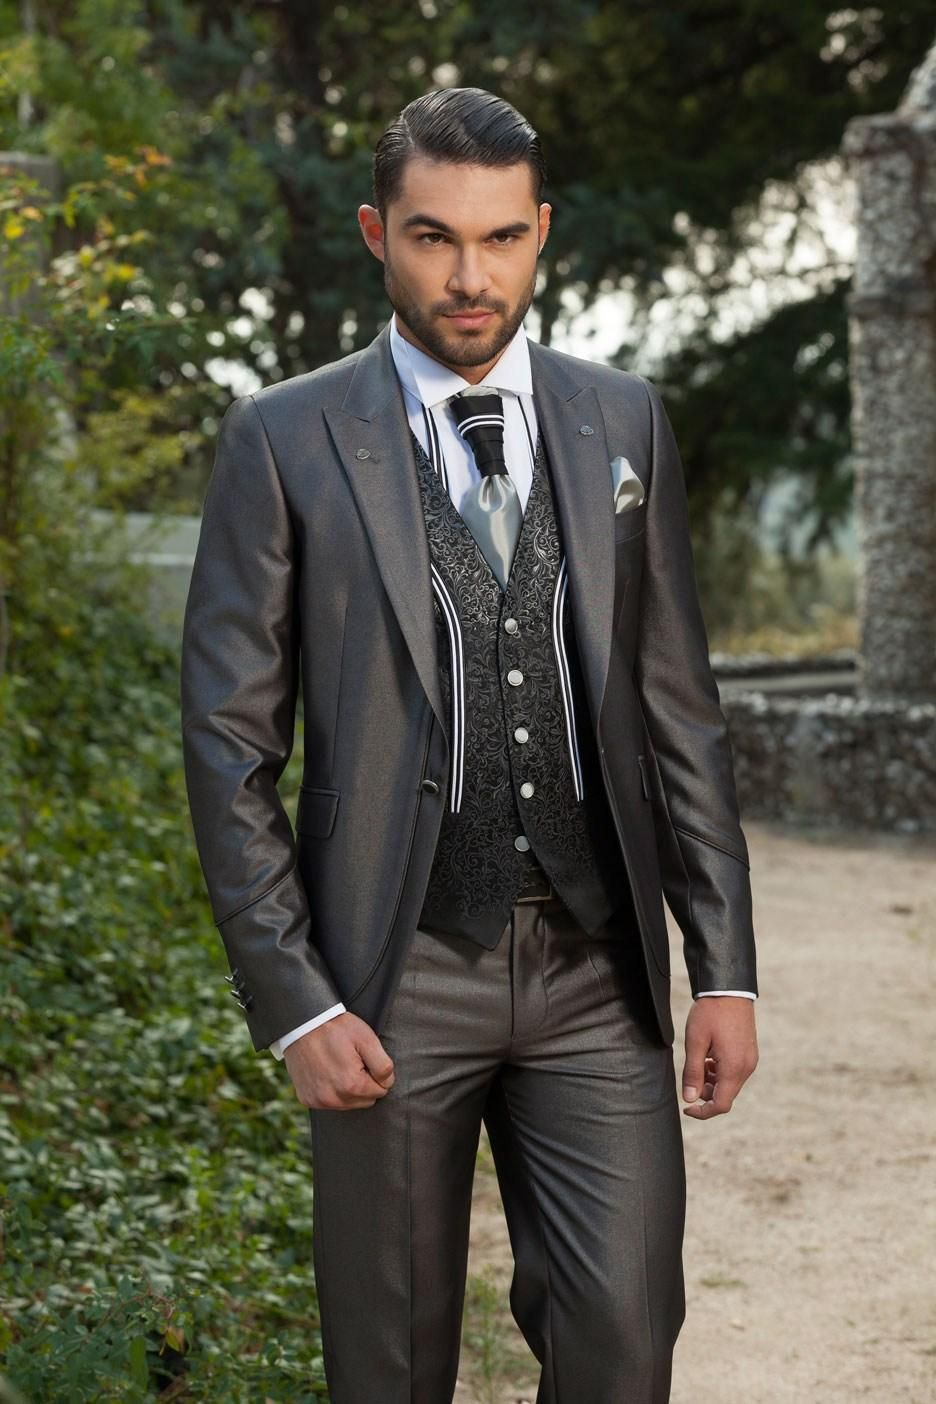 Grooms Wear Quality Groom Tuxedo Directly From China Wedding Suppliers New Fashion Tuxedos Peak Lapel Groomsmen Best Man Suits